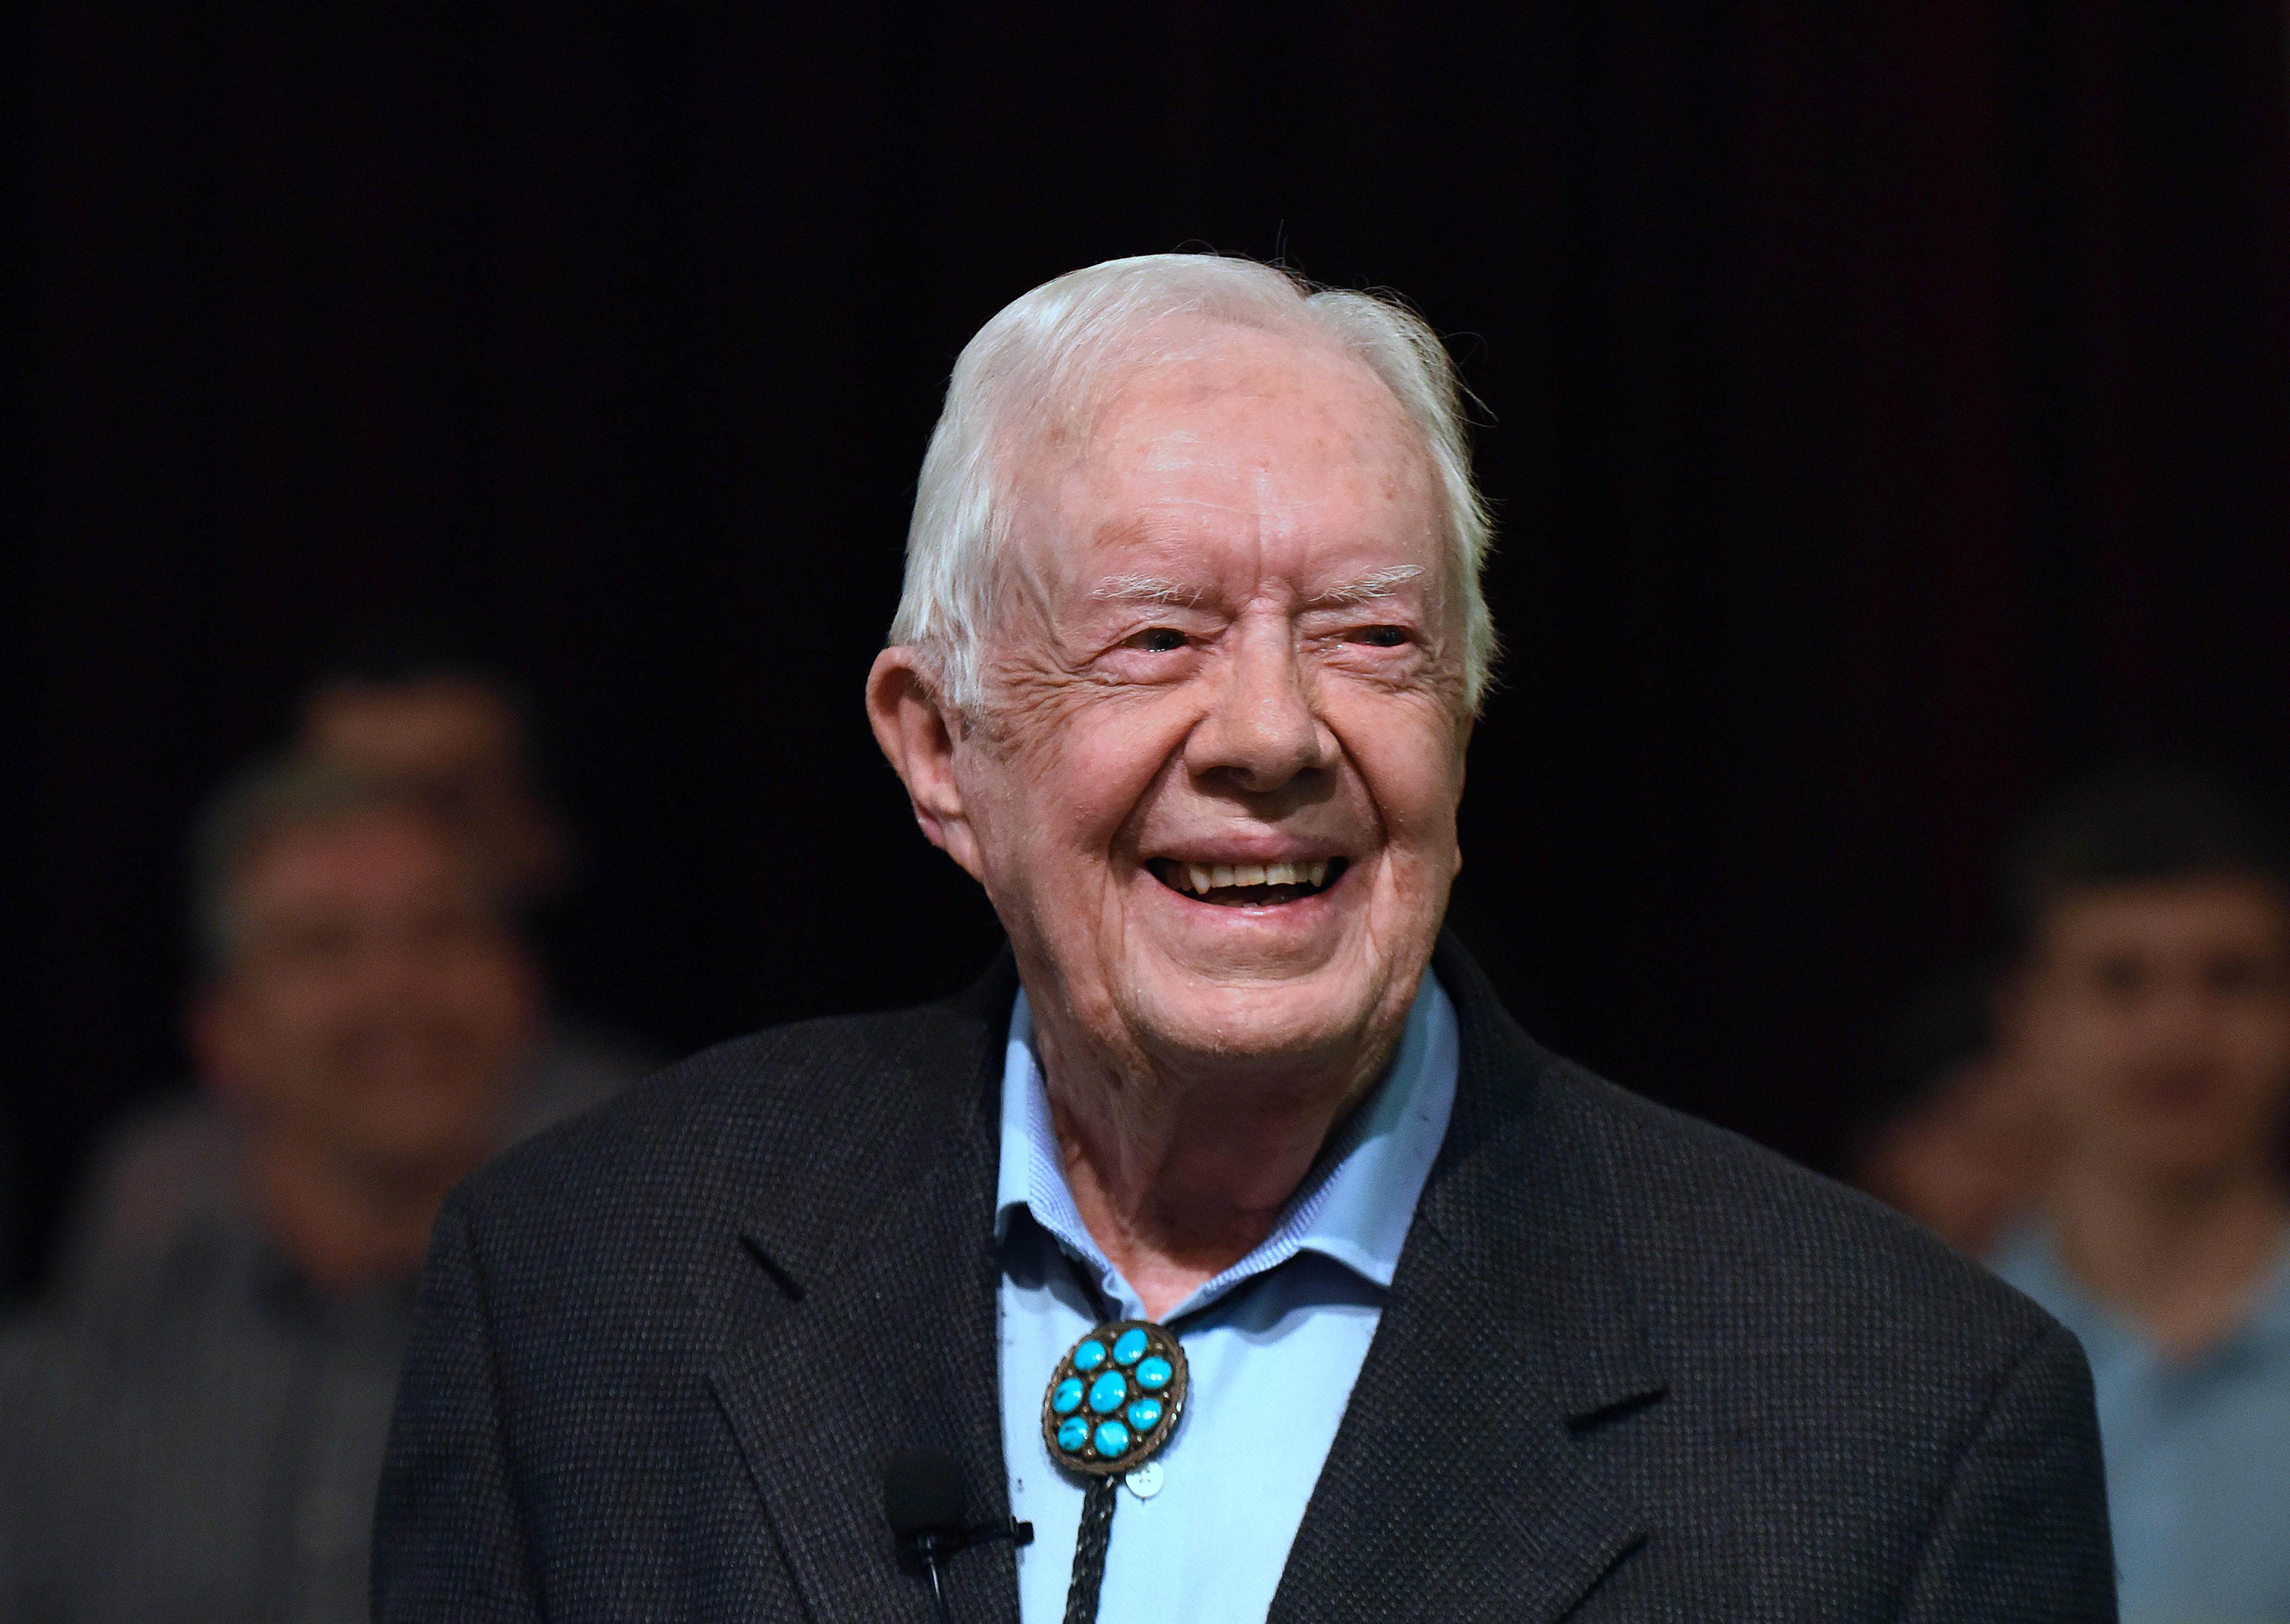 Jimmy Carter on living to 95